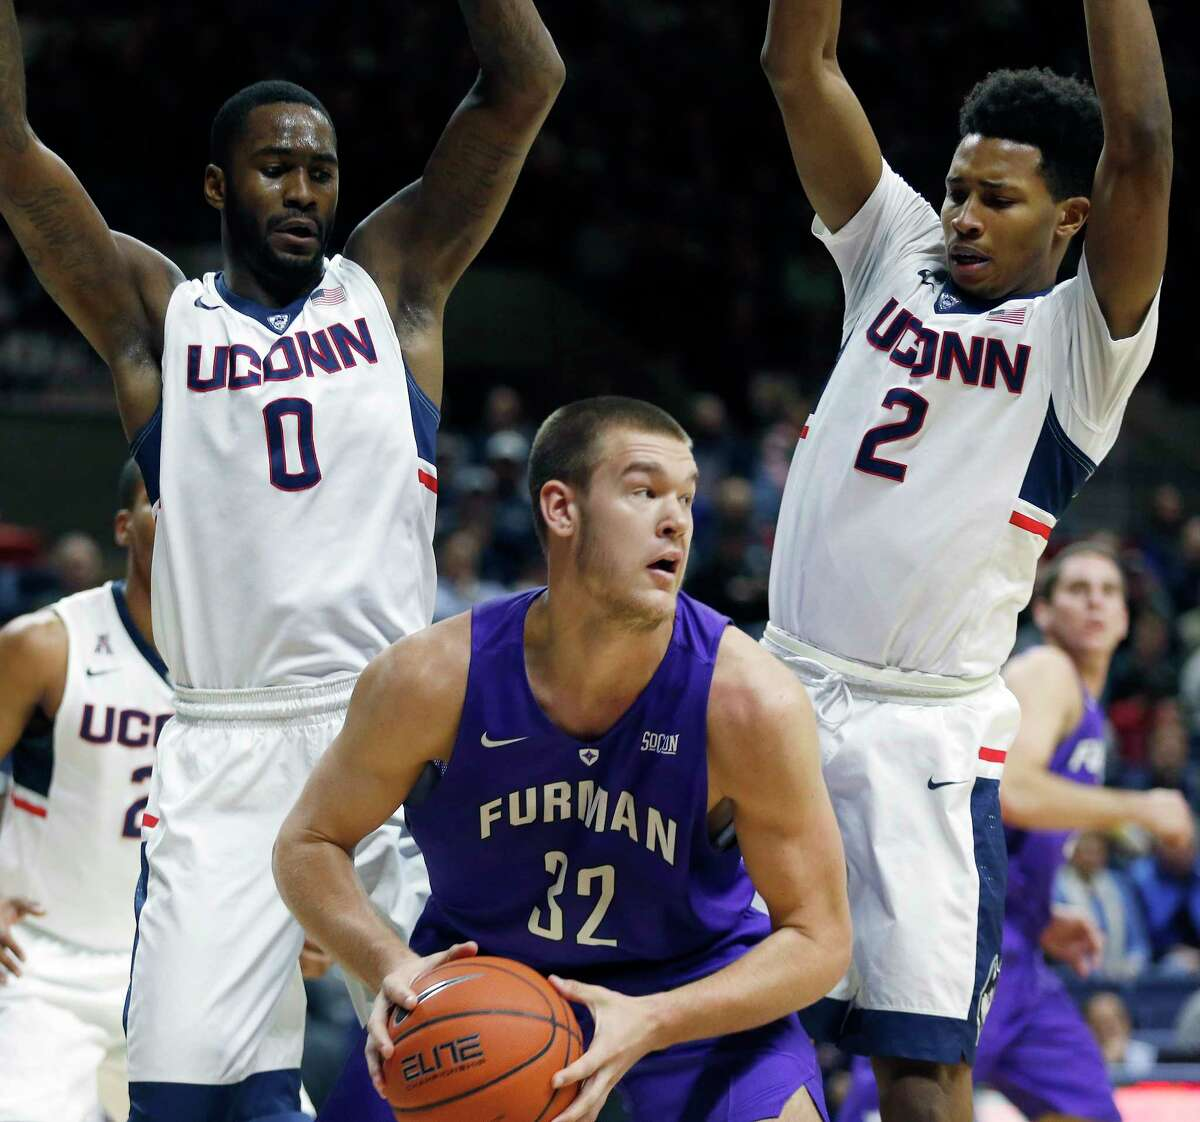 UConn's Phil Nolan (0) and Jalen Adams (2) defend Furman's Matt Rafferty (32) during the first half of the 19th-ranked Huskies' 83-58 win on Saturday at Gampel Pavilion.